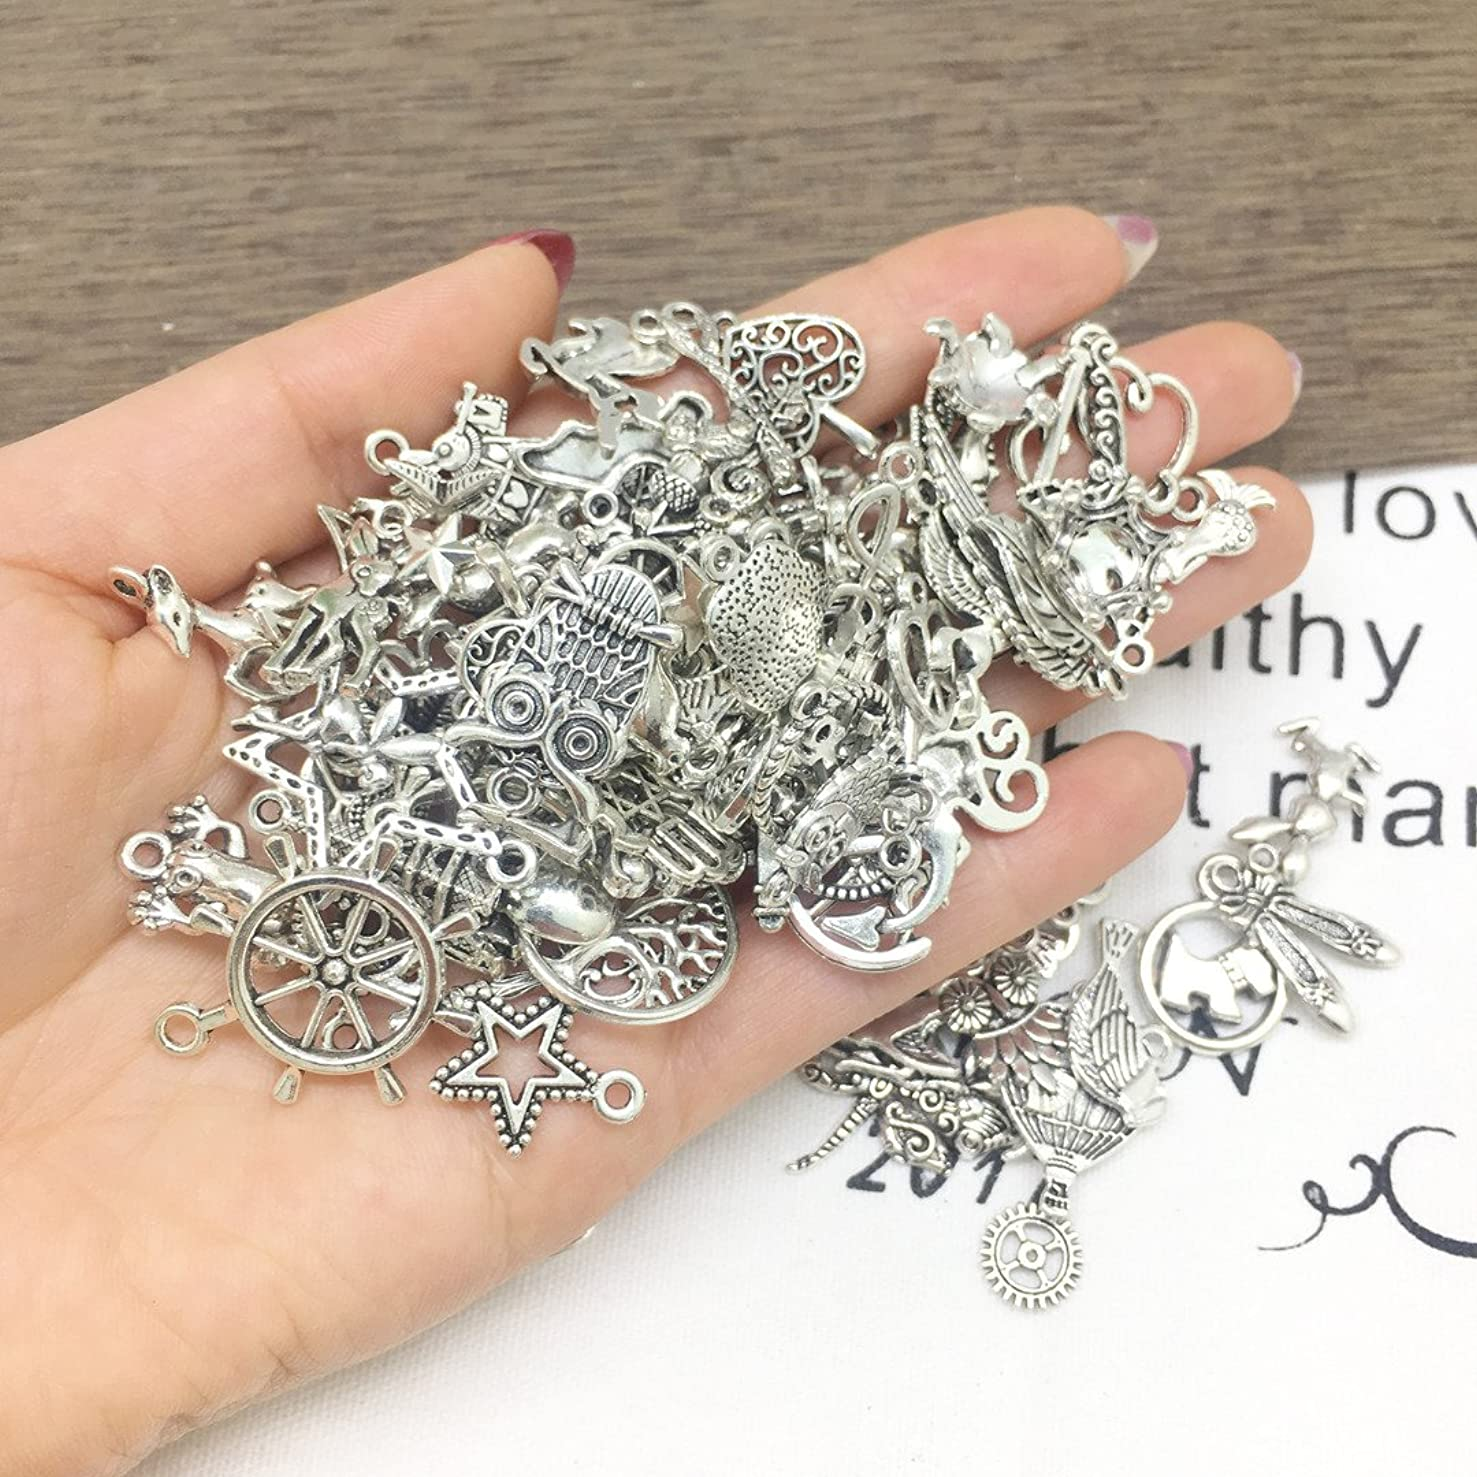 Wholesale 100 PCS Mixed Antique Silver Pewter Smooth Metal Charms Pendants DIY for Necklace Bracelet Dangle Jewelry Making and Crafting